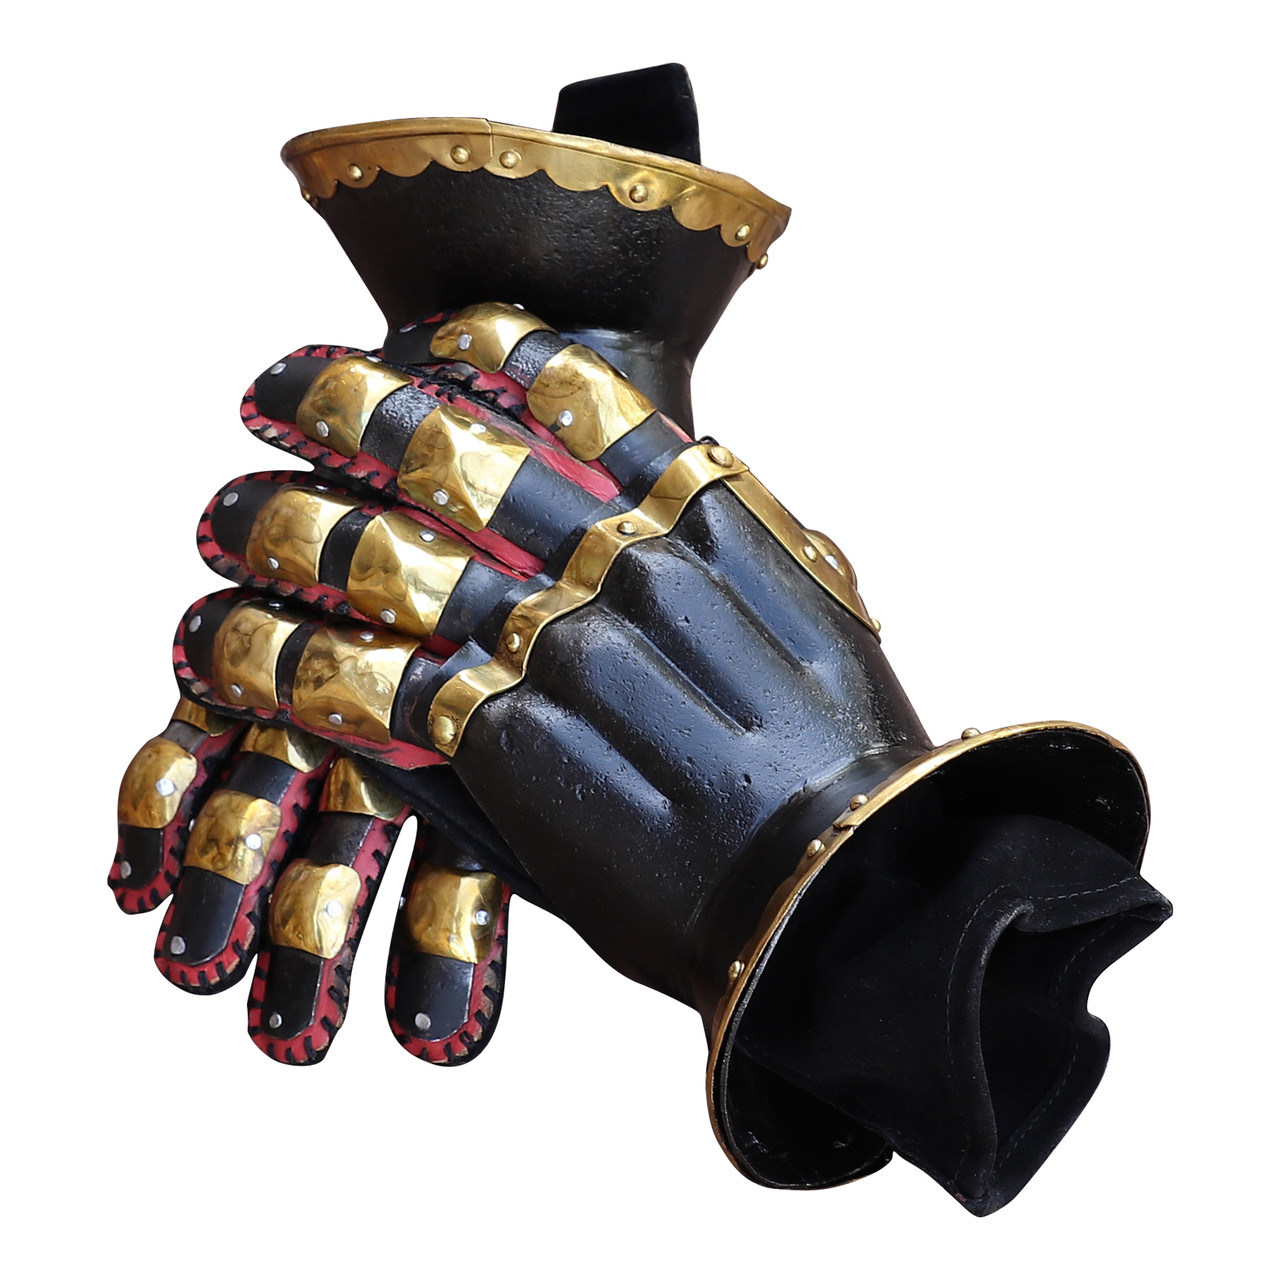 Armory Replicas 'Ñ¢ The Cursed Black Knight Functional Medieval Armor Gauntlets